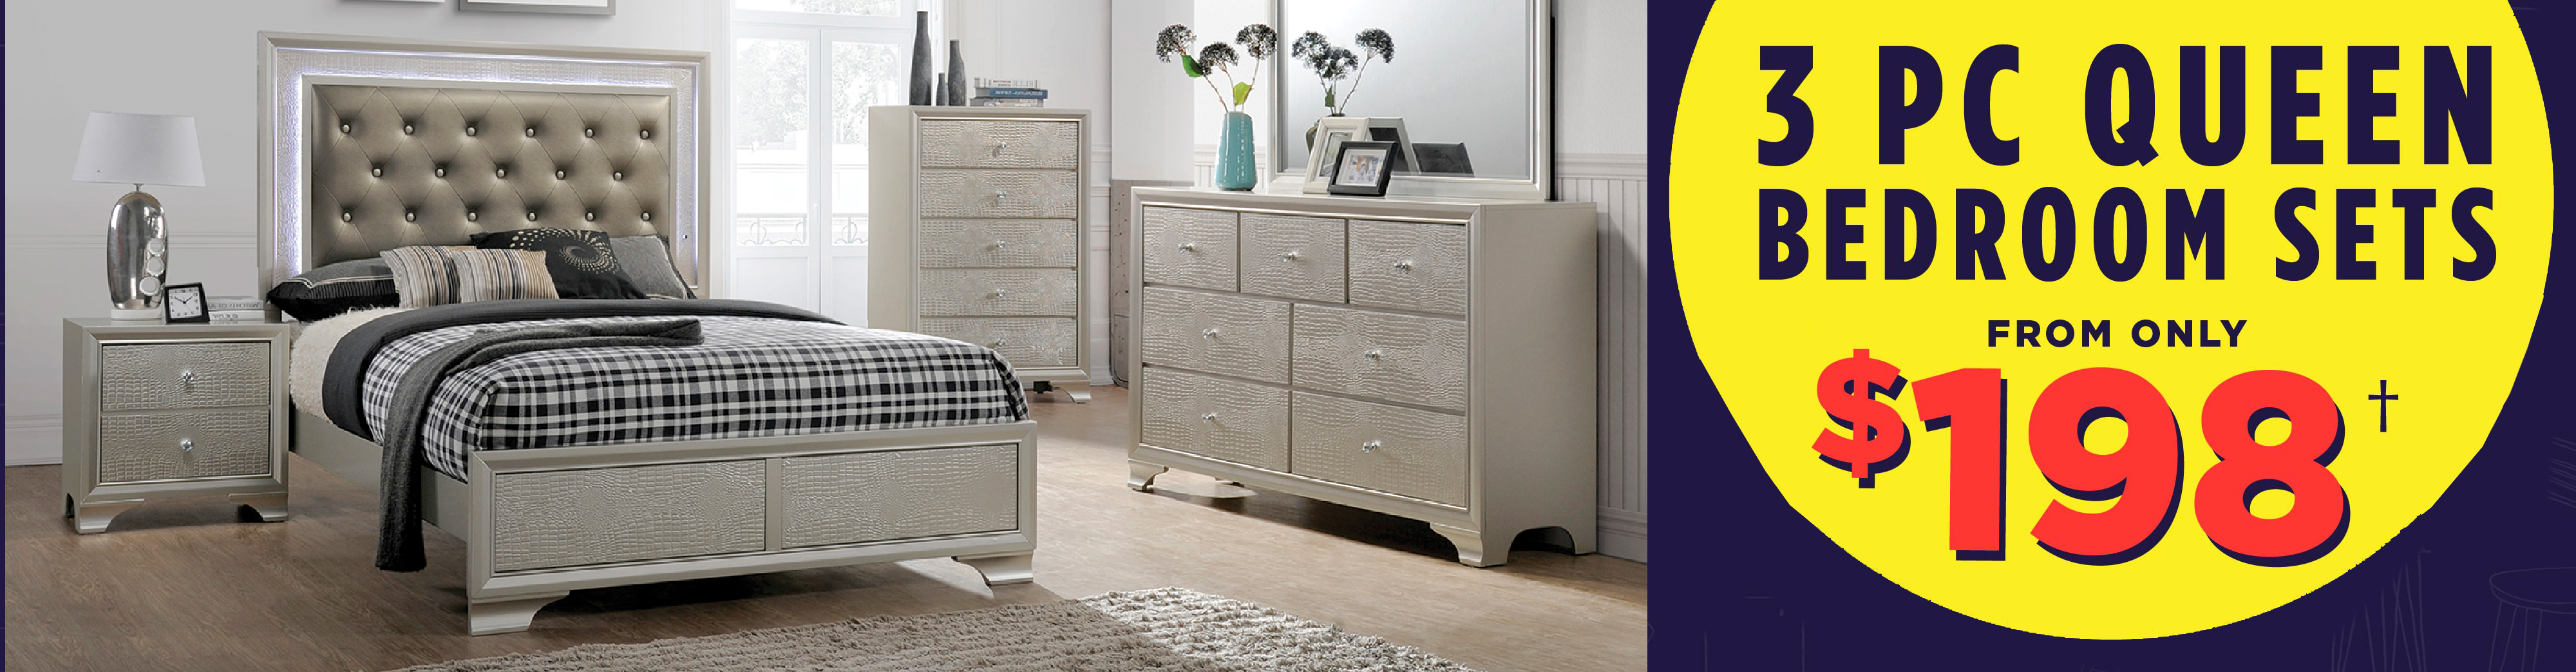 3-pc. Queen Bedroom Sets from only $198!